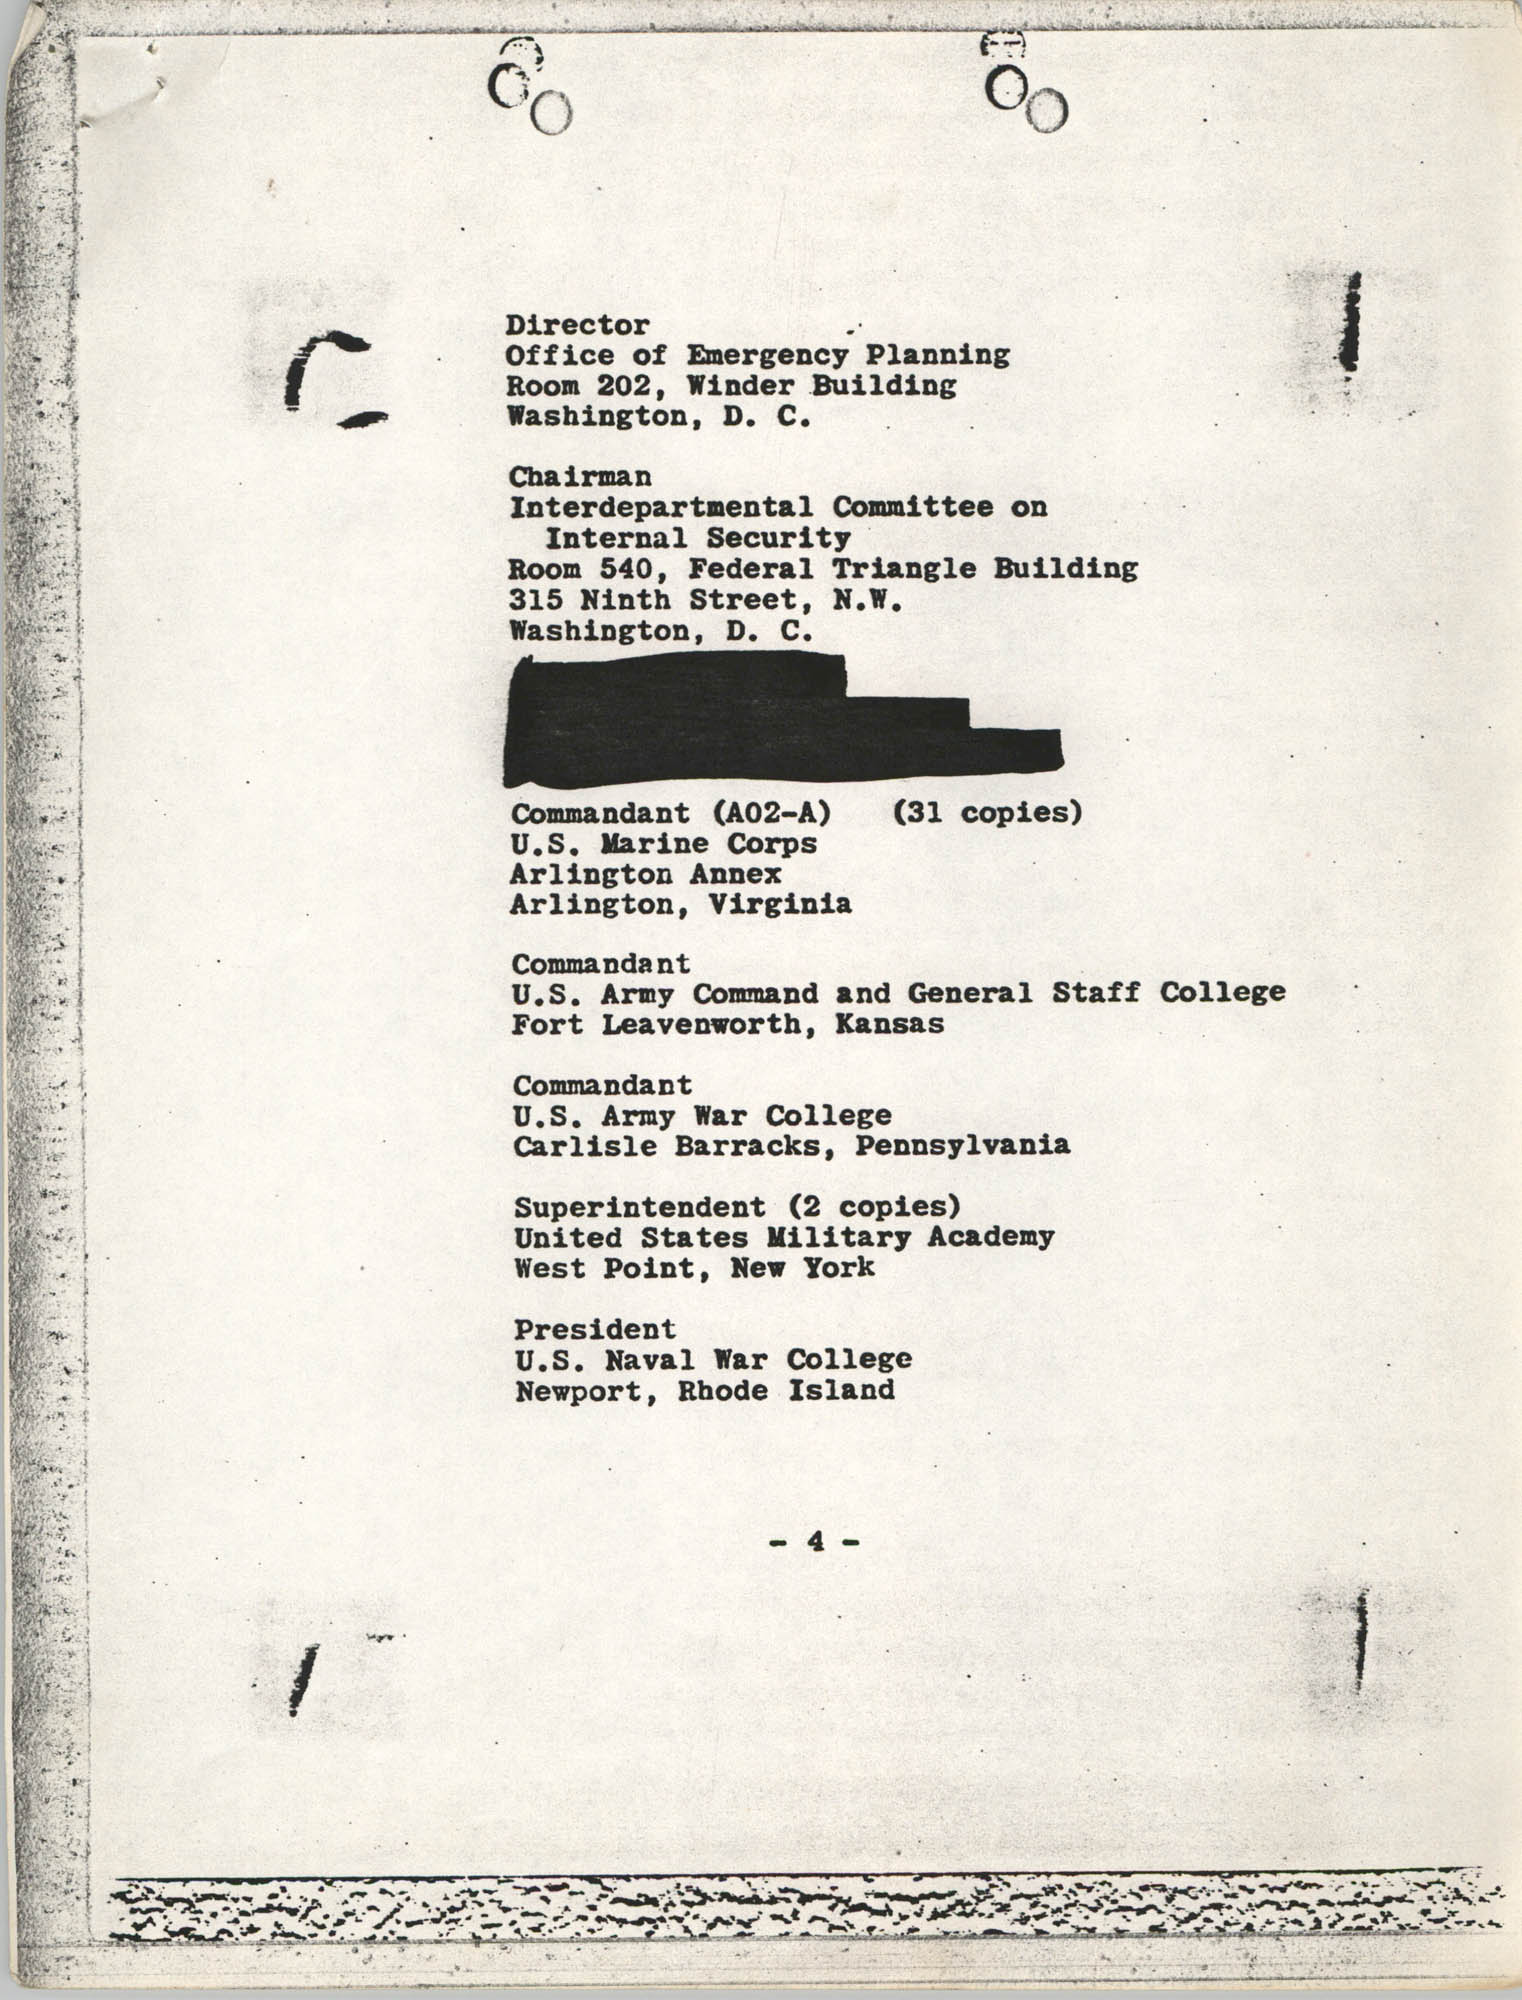 Student Nonviolent Coordinating Committee Lawsuit, Staff List Page 4